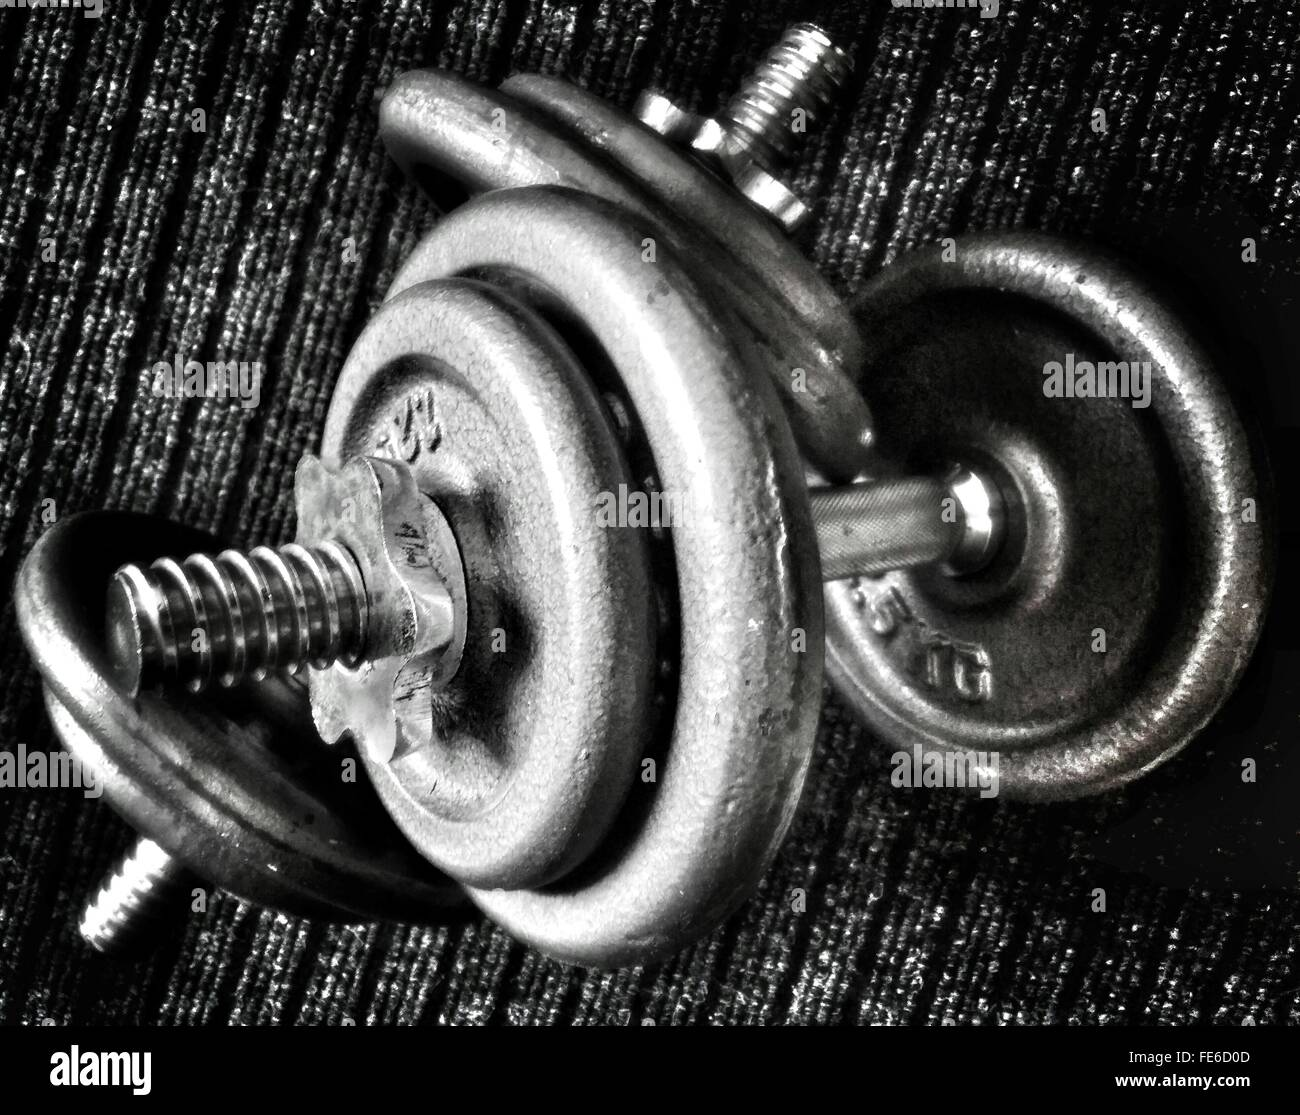 Close-Up Of Pair Of Dumbbells - Stock Image